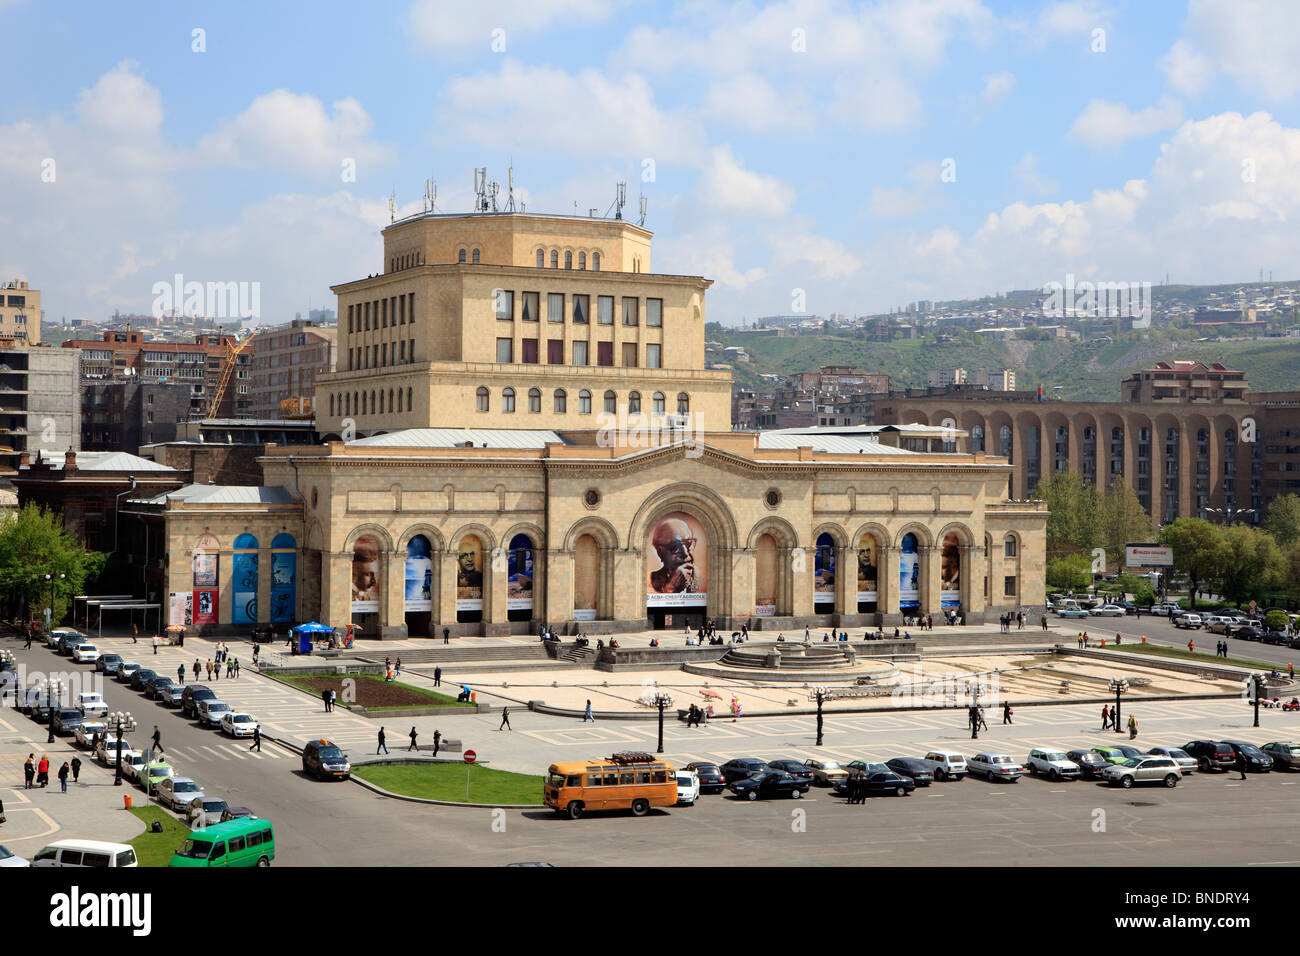 Republic Square, Yerevan, Armenia - Stock Image